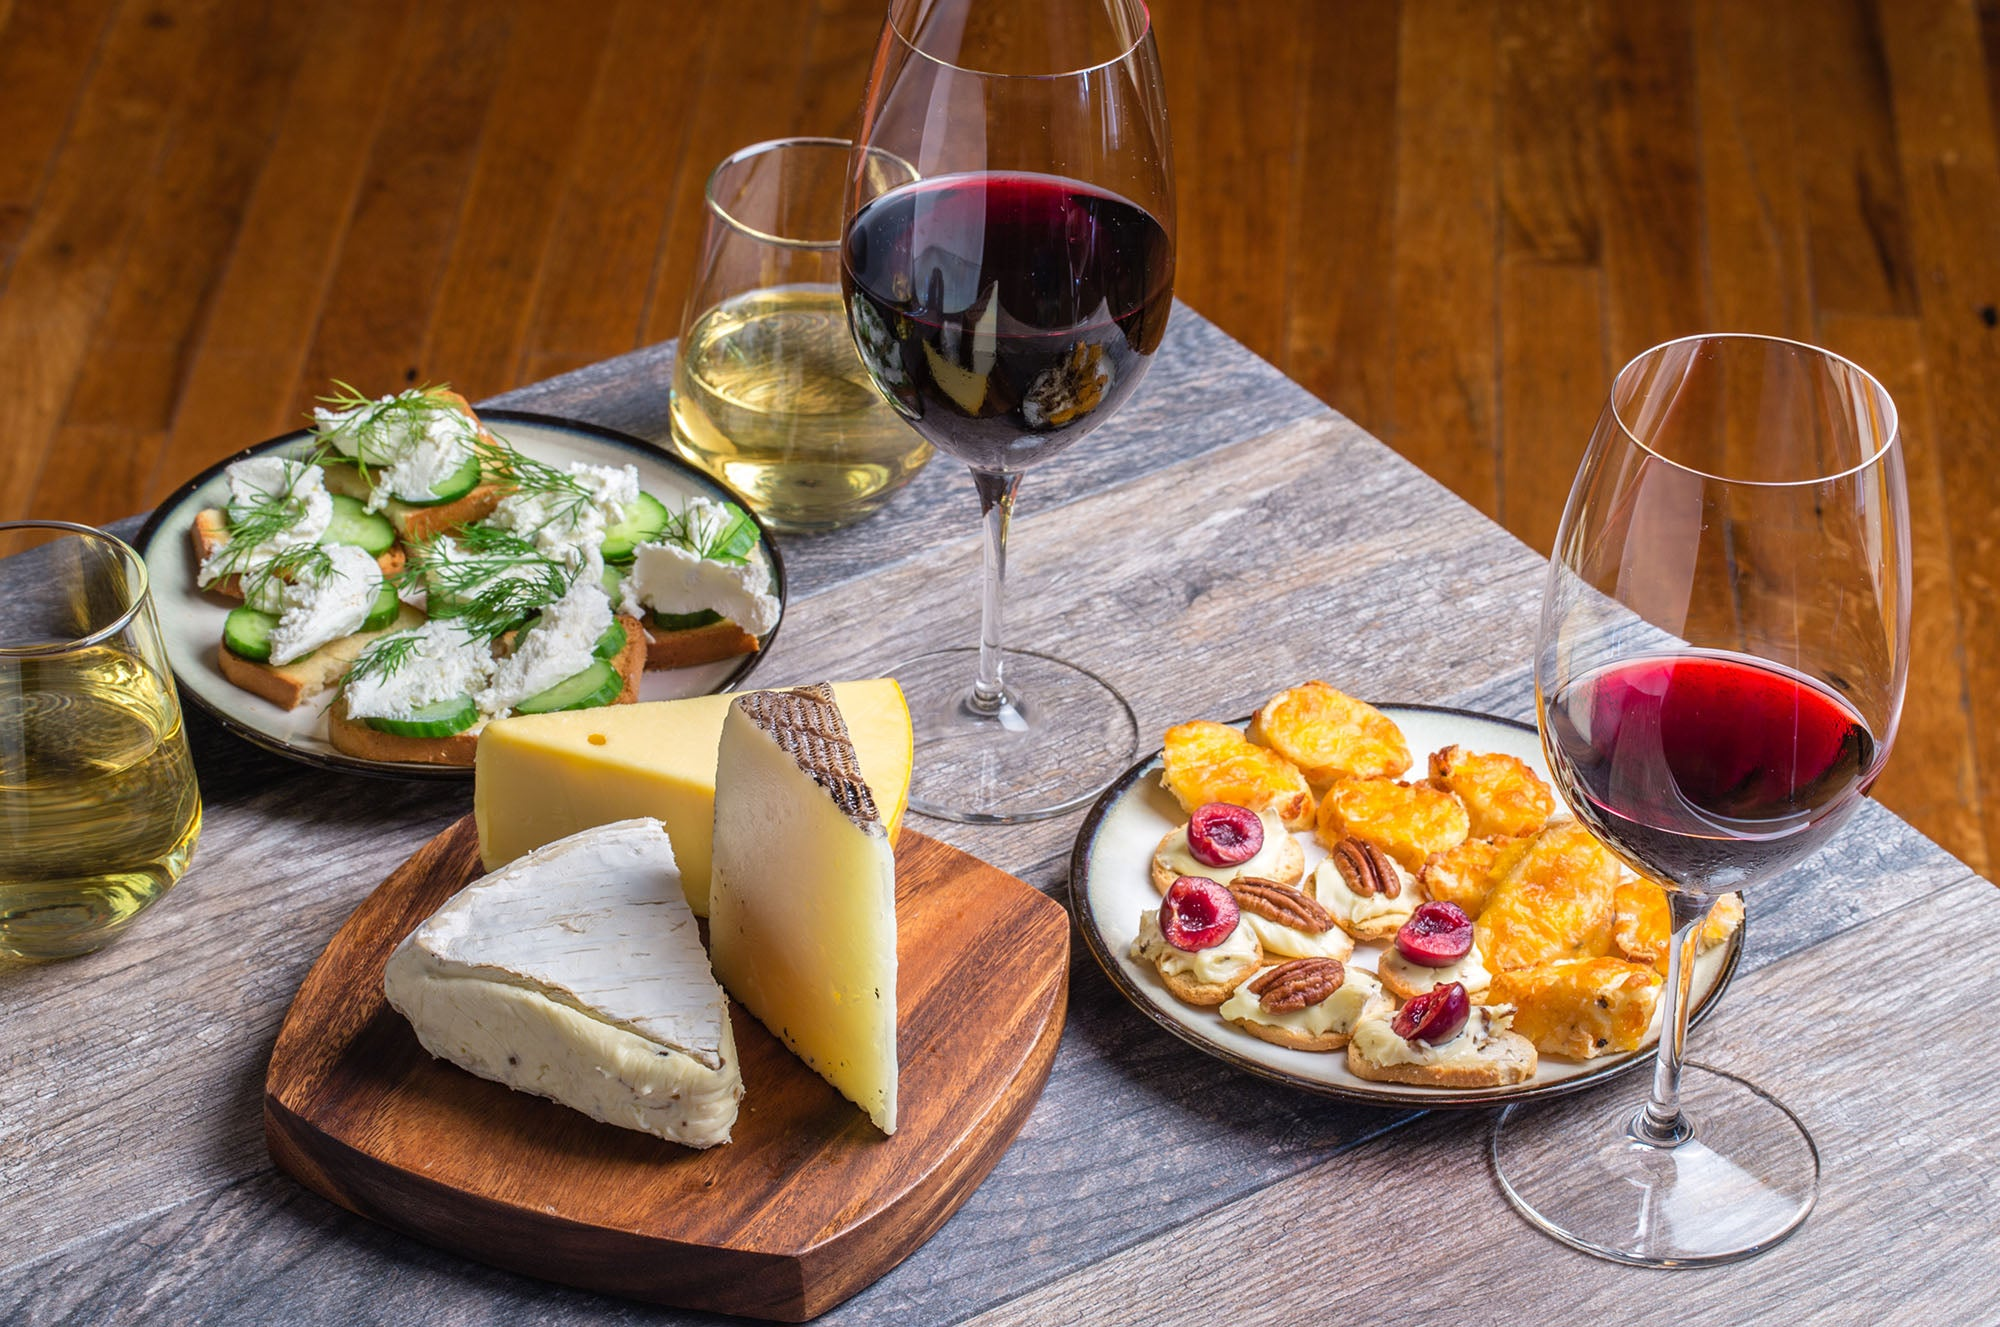 The Food & Wine Guide to Perfect Pairings By Brumate